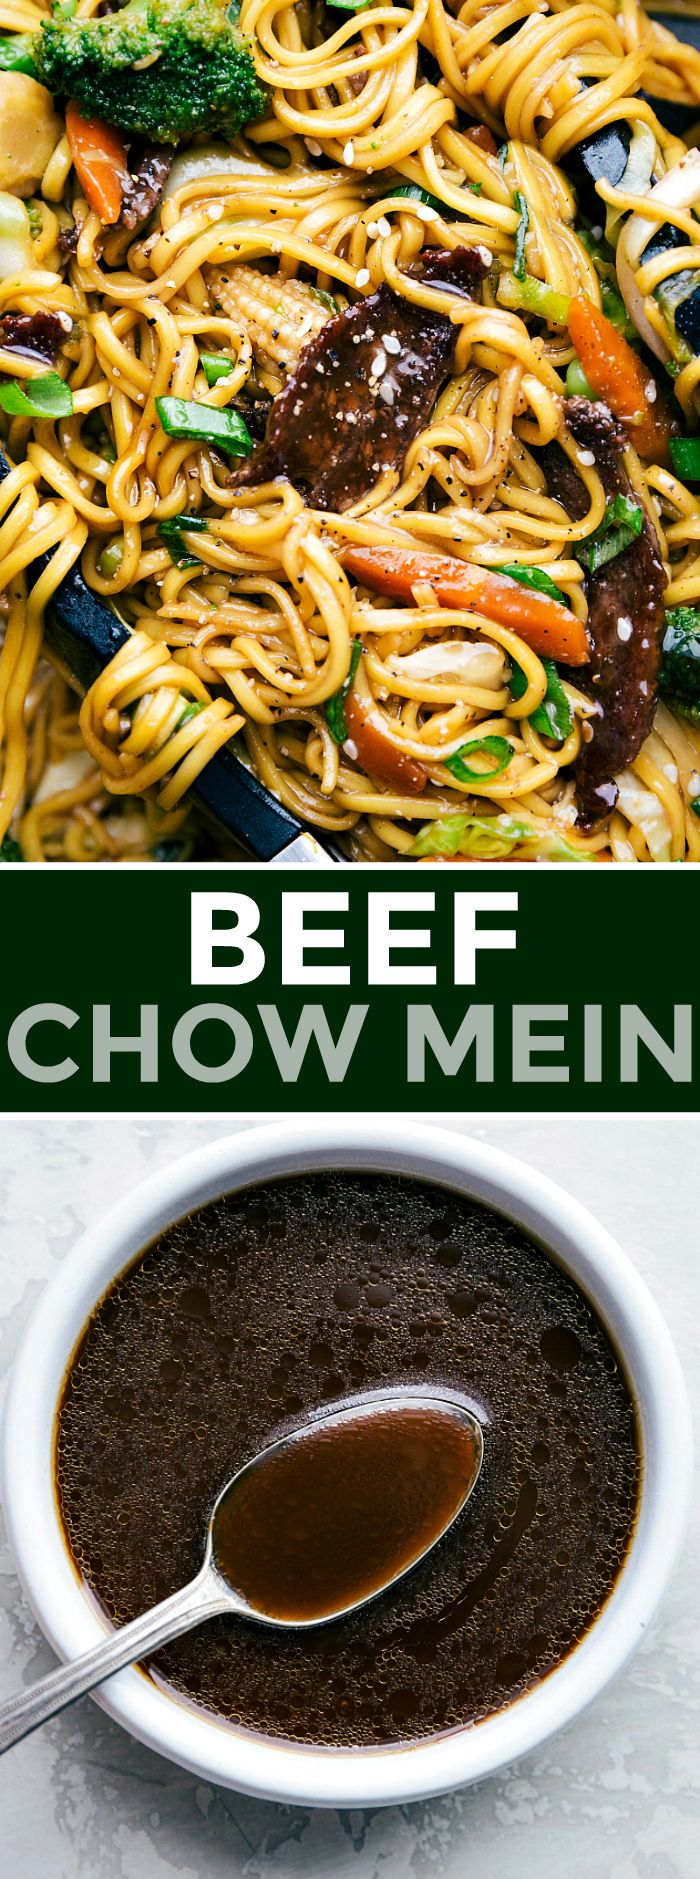 Photo of Beef Chow Mein